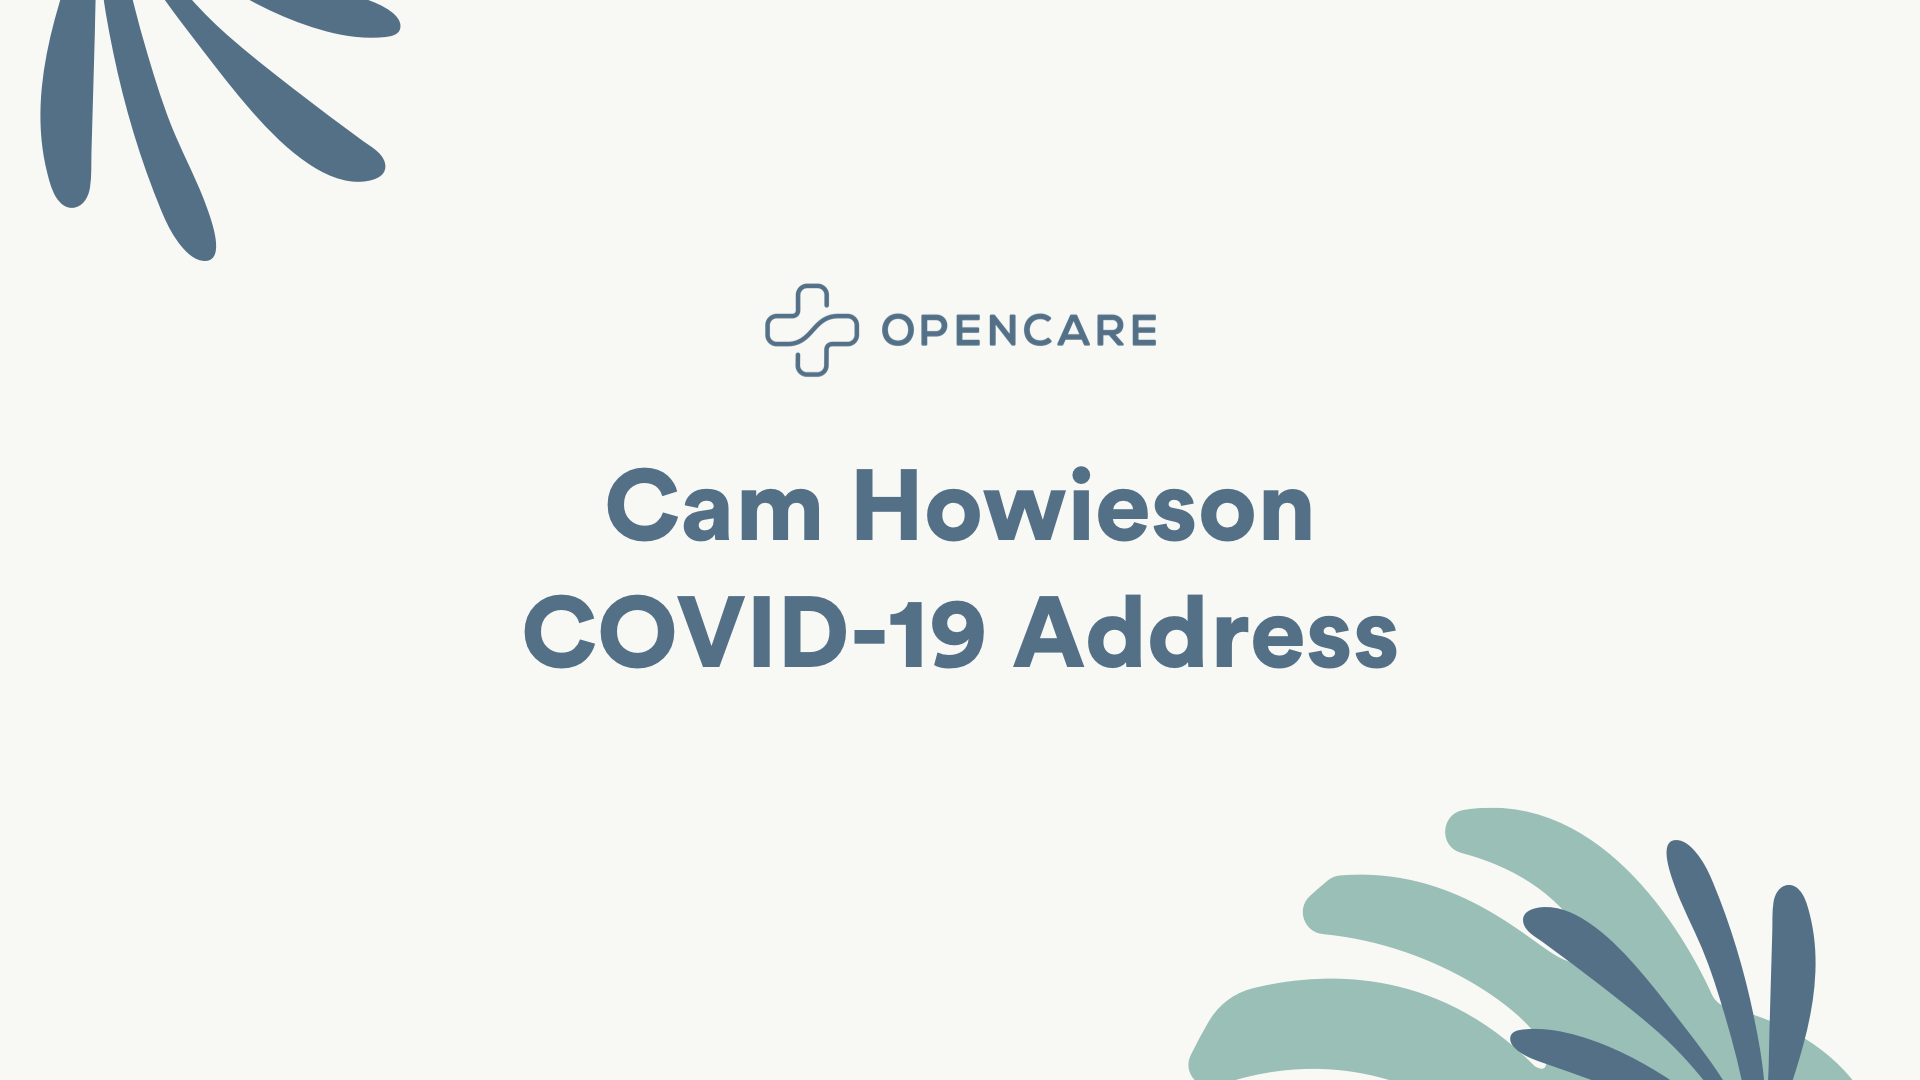 CEO of Opencare Cam Howieson